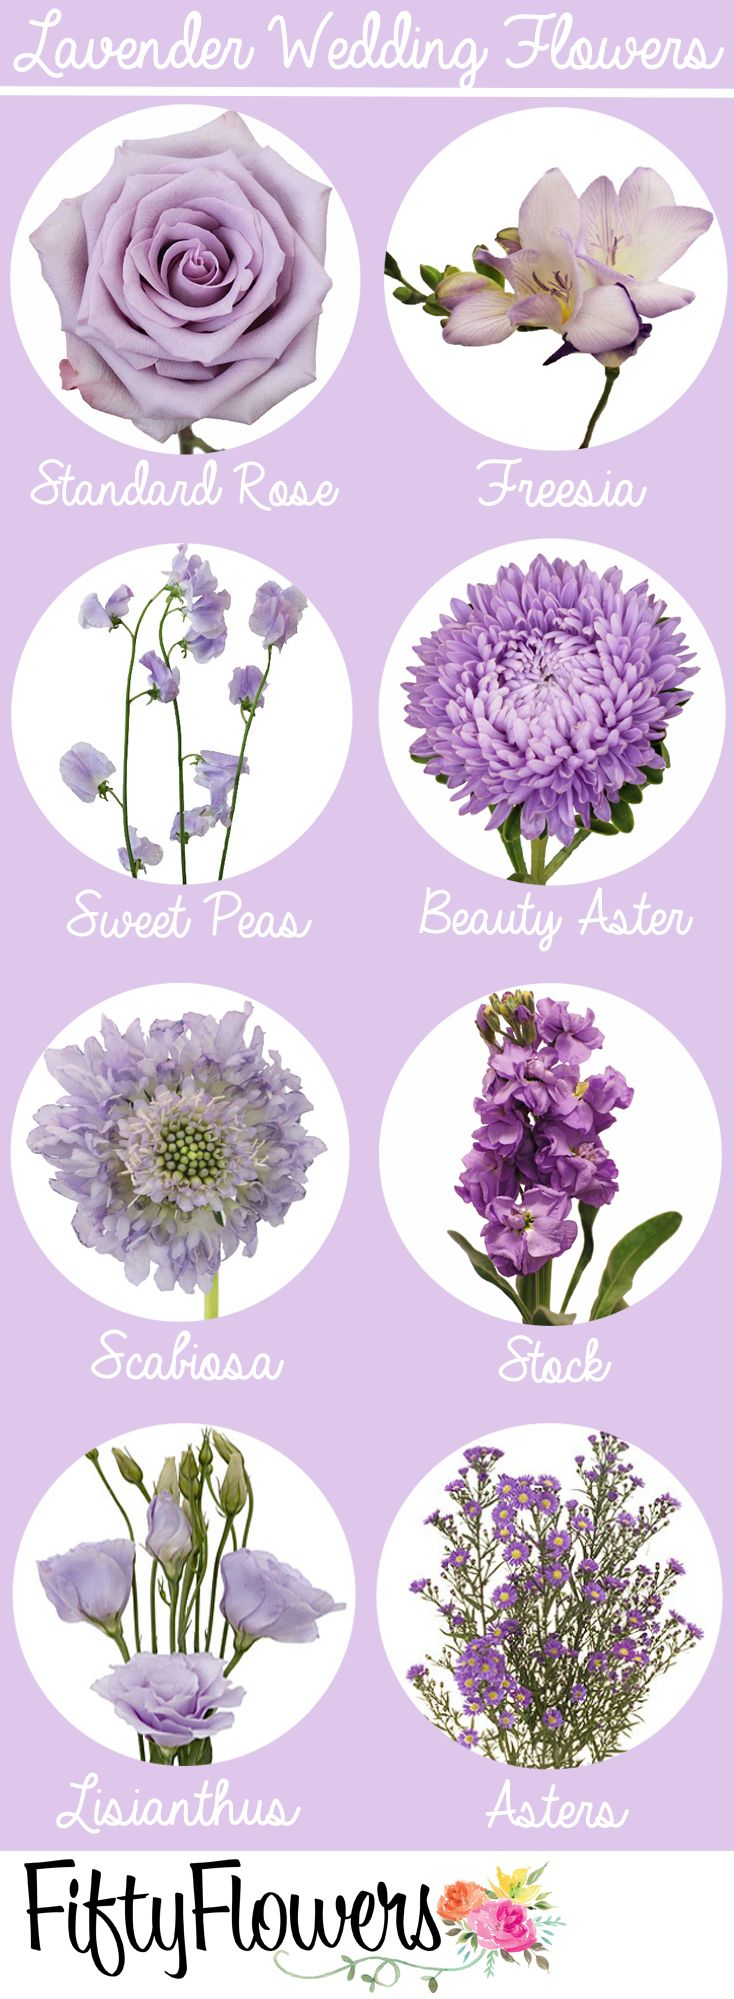 Find the perfect lavender flowers for your wedding at FiftyFlowers.com #purpleweddingflowers